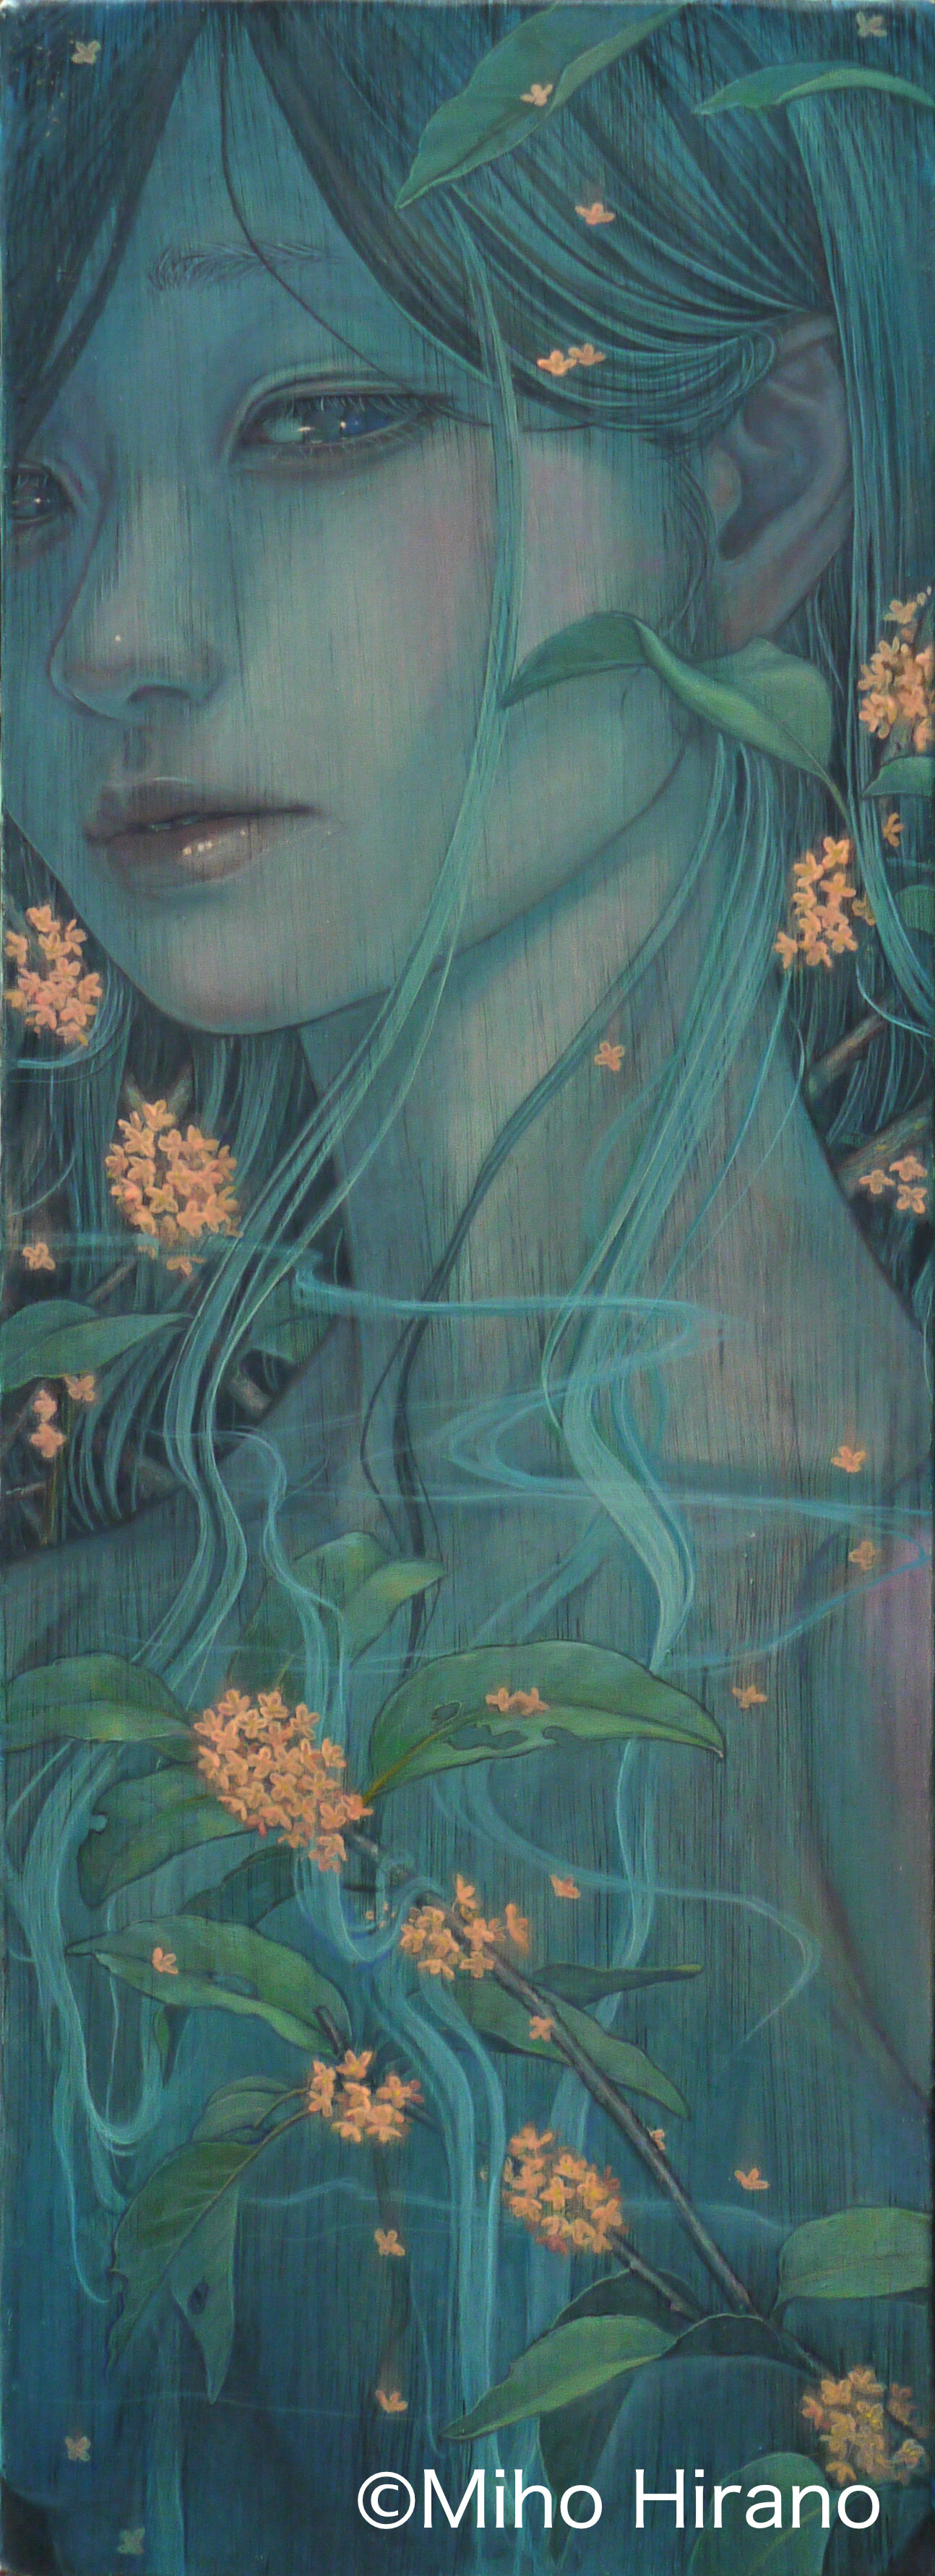 Miho Hirano_A scent that traces memories.jpg